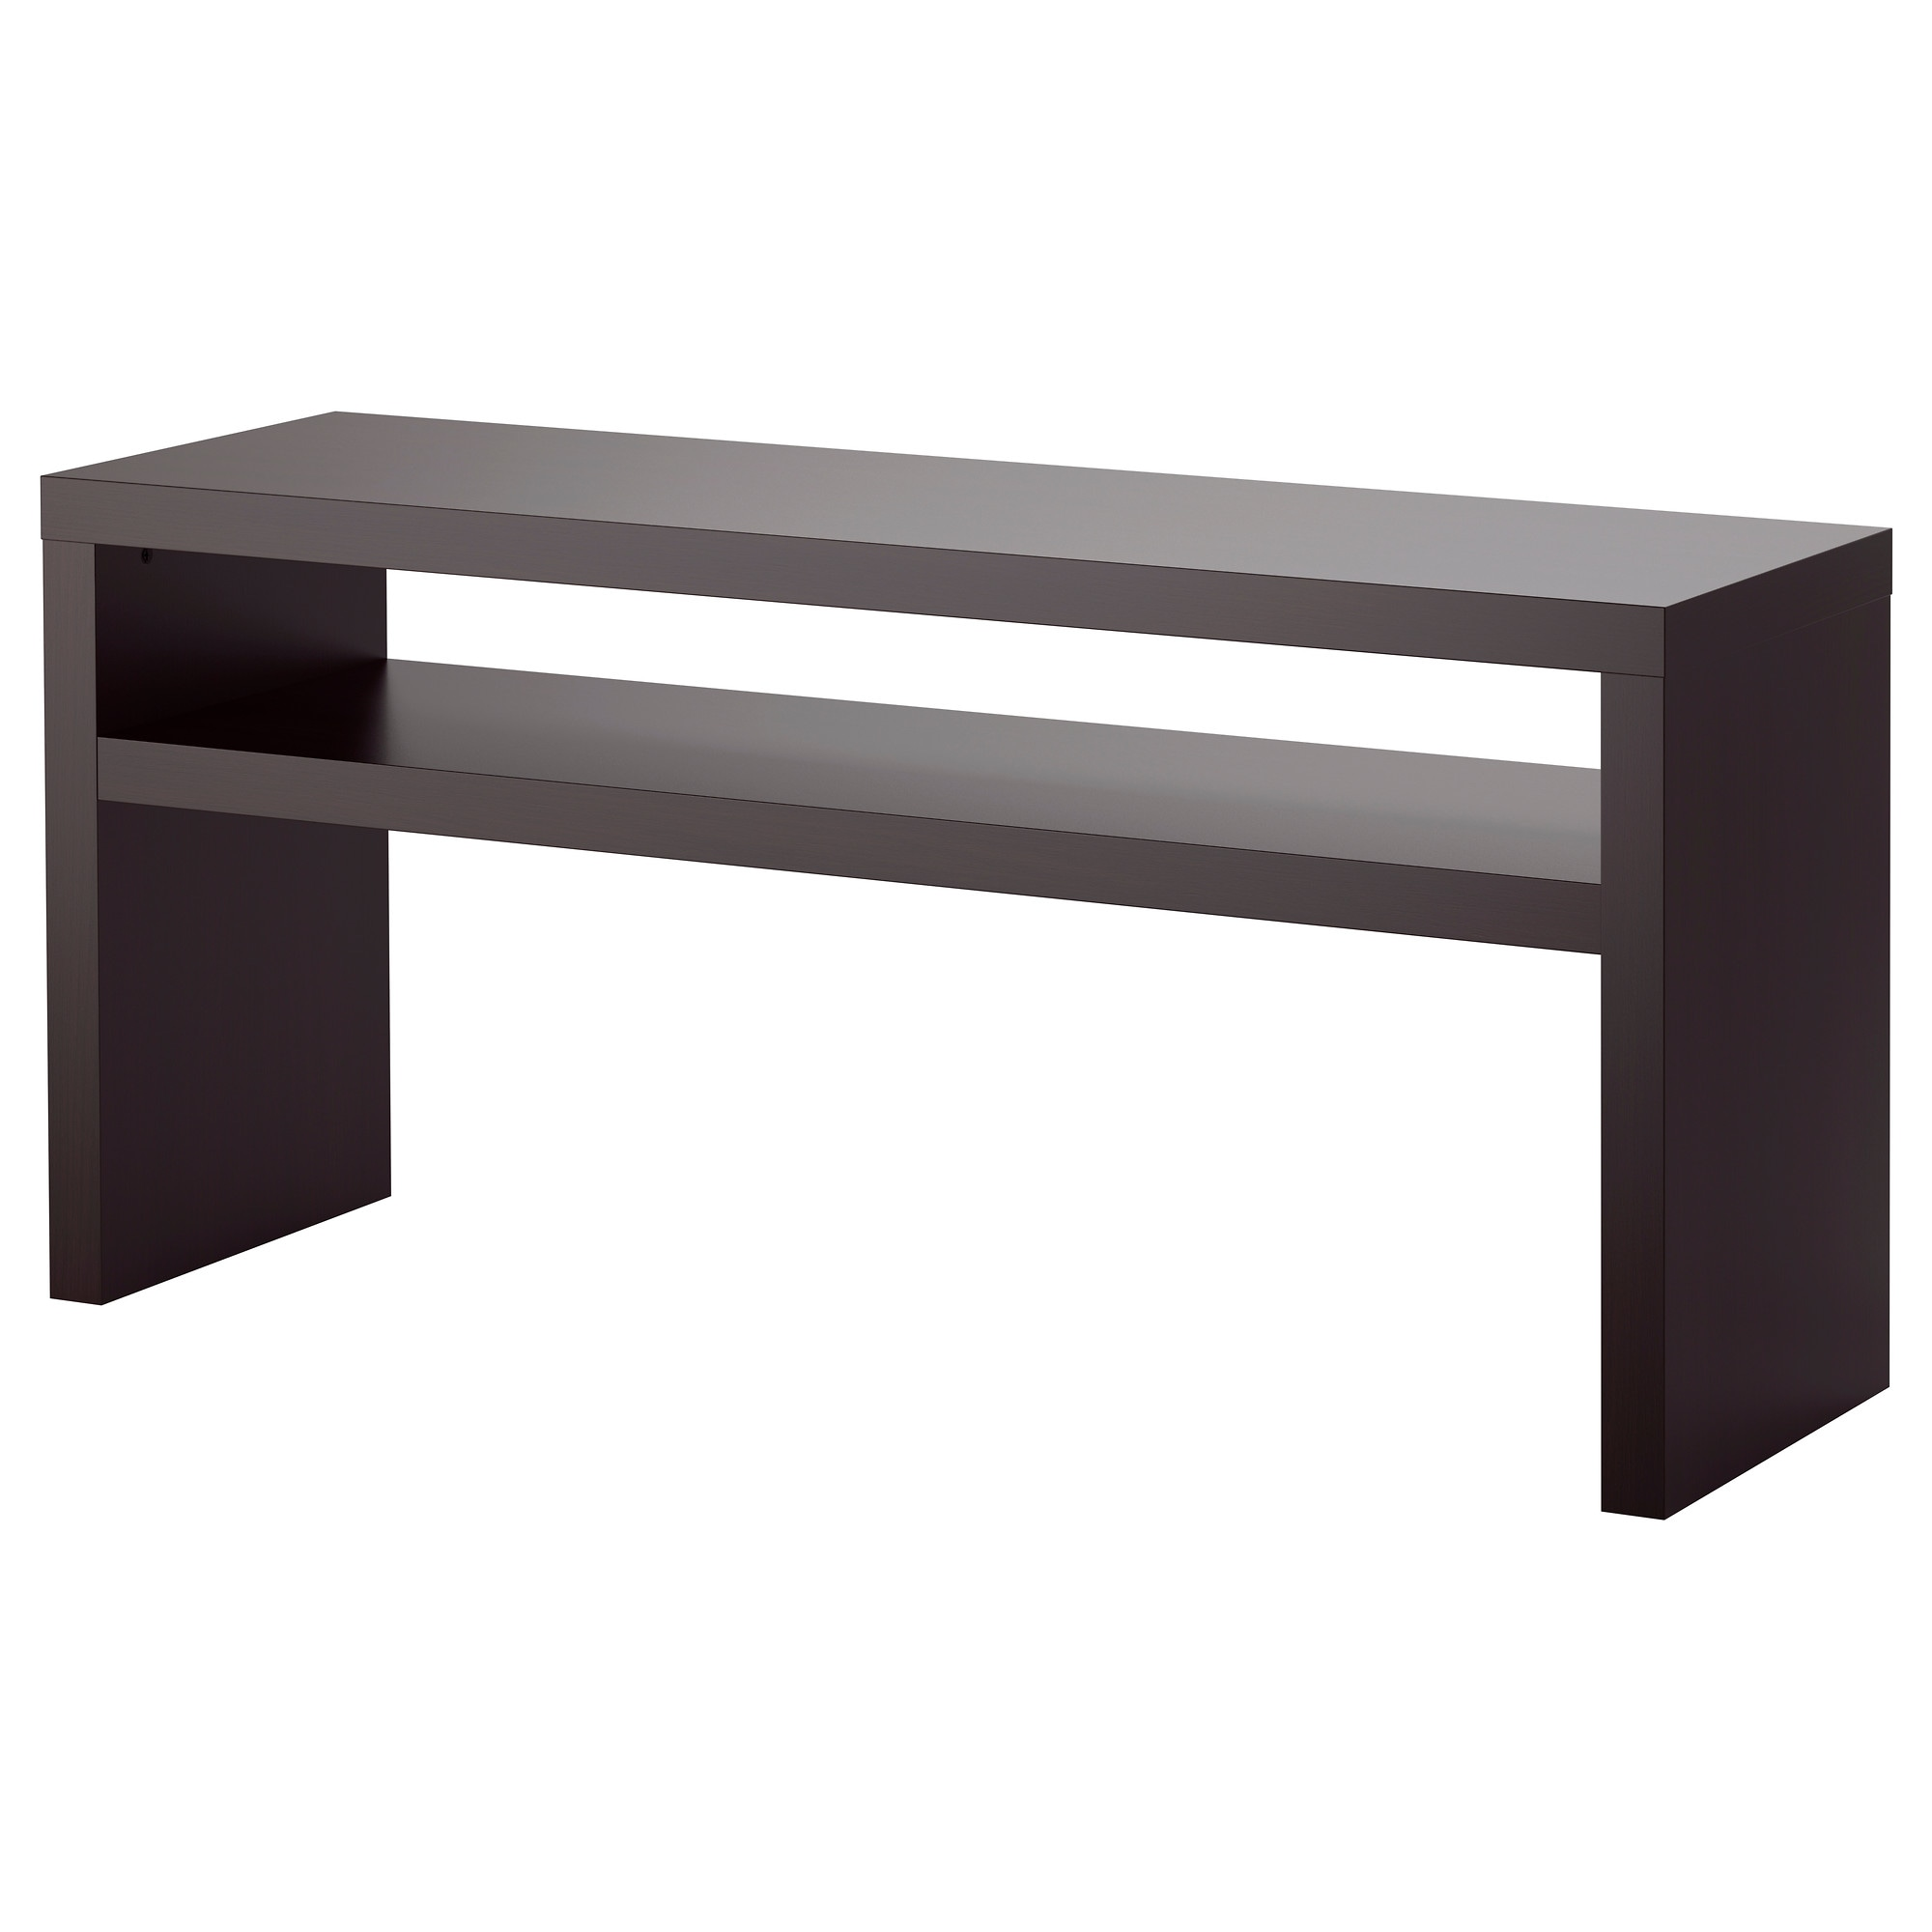 LACK Console Table IKEA - Console tables ikea